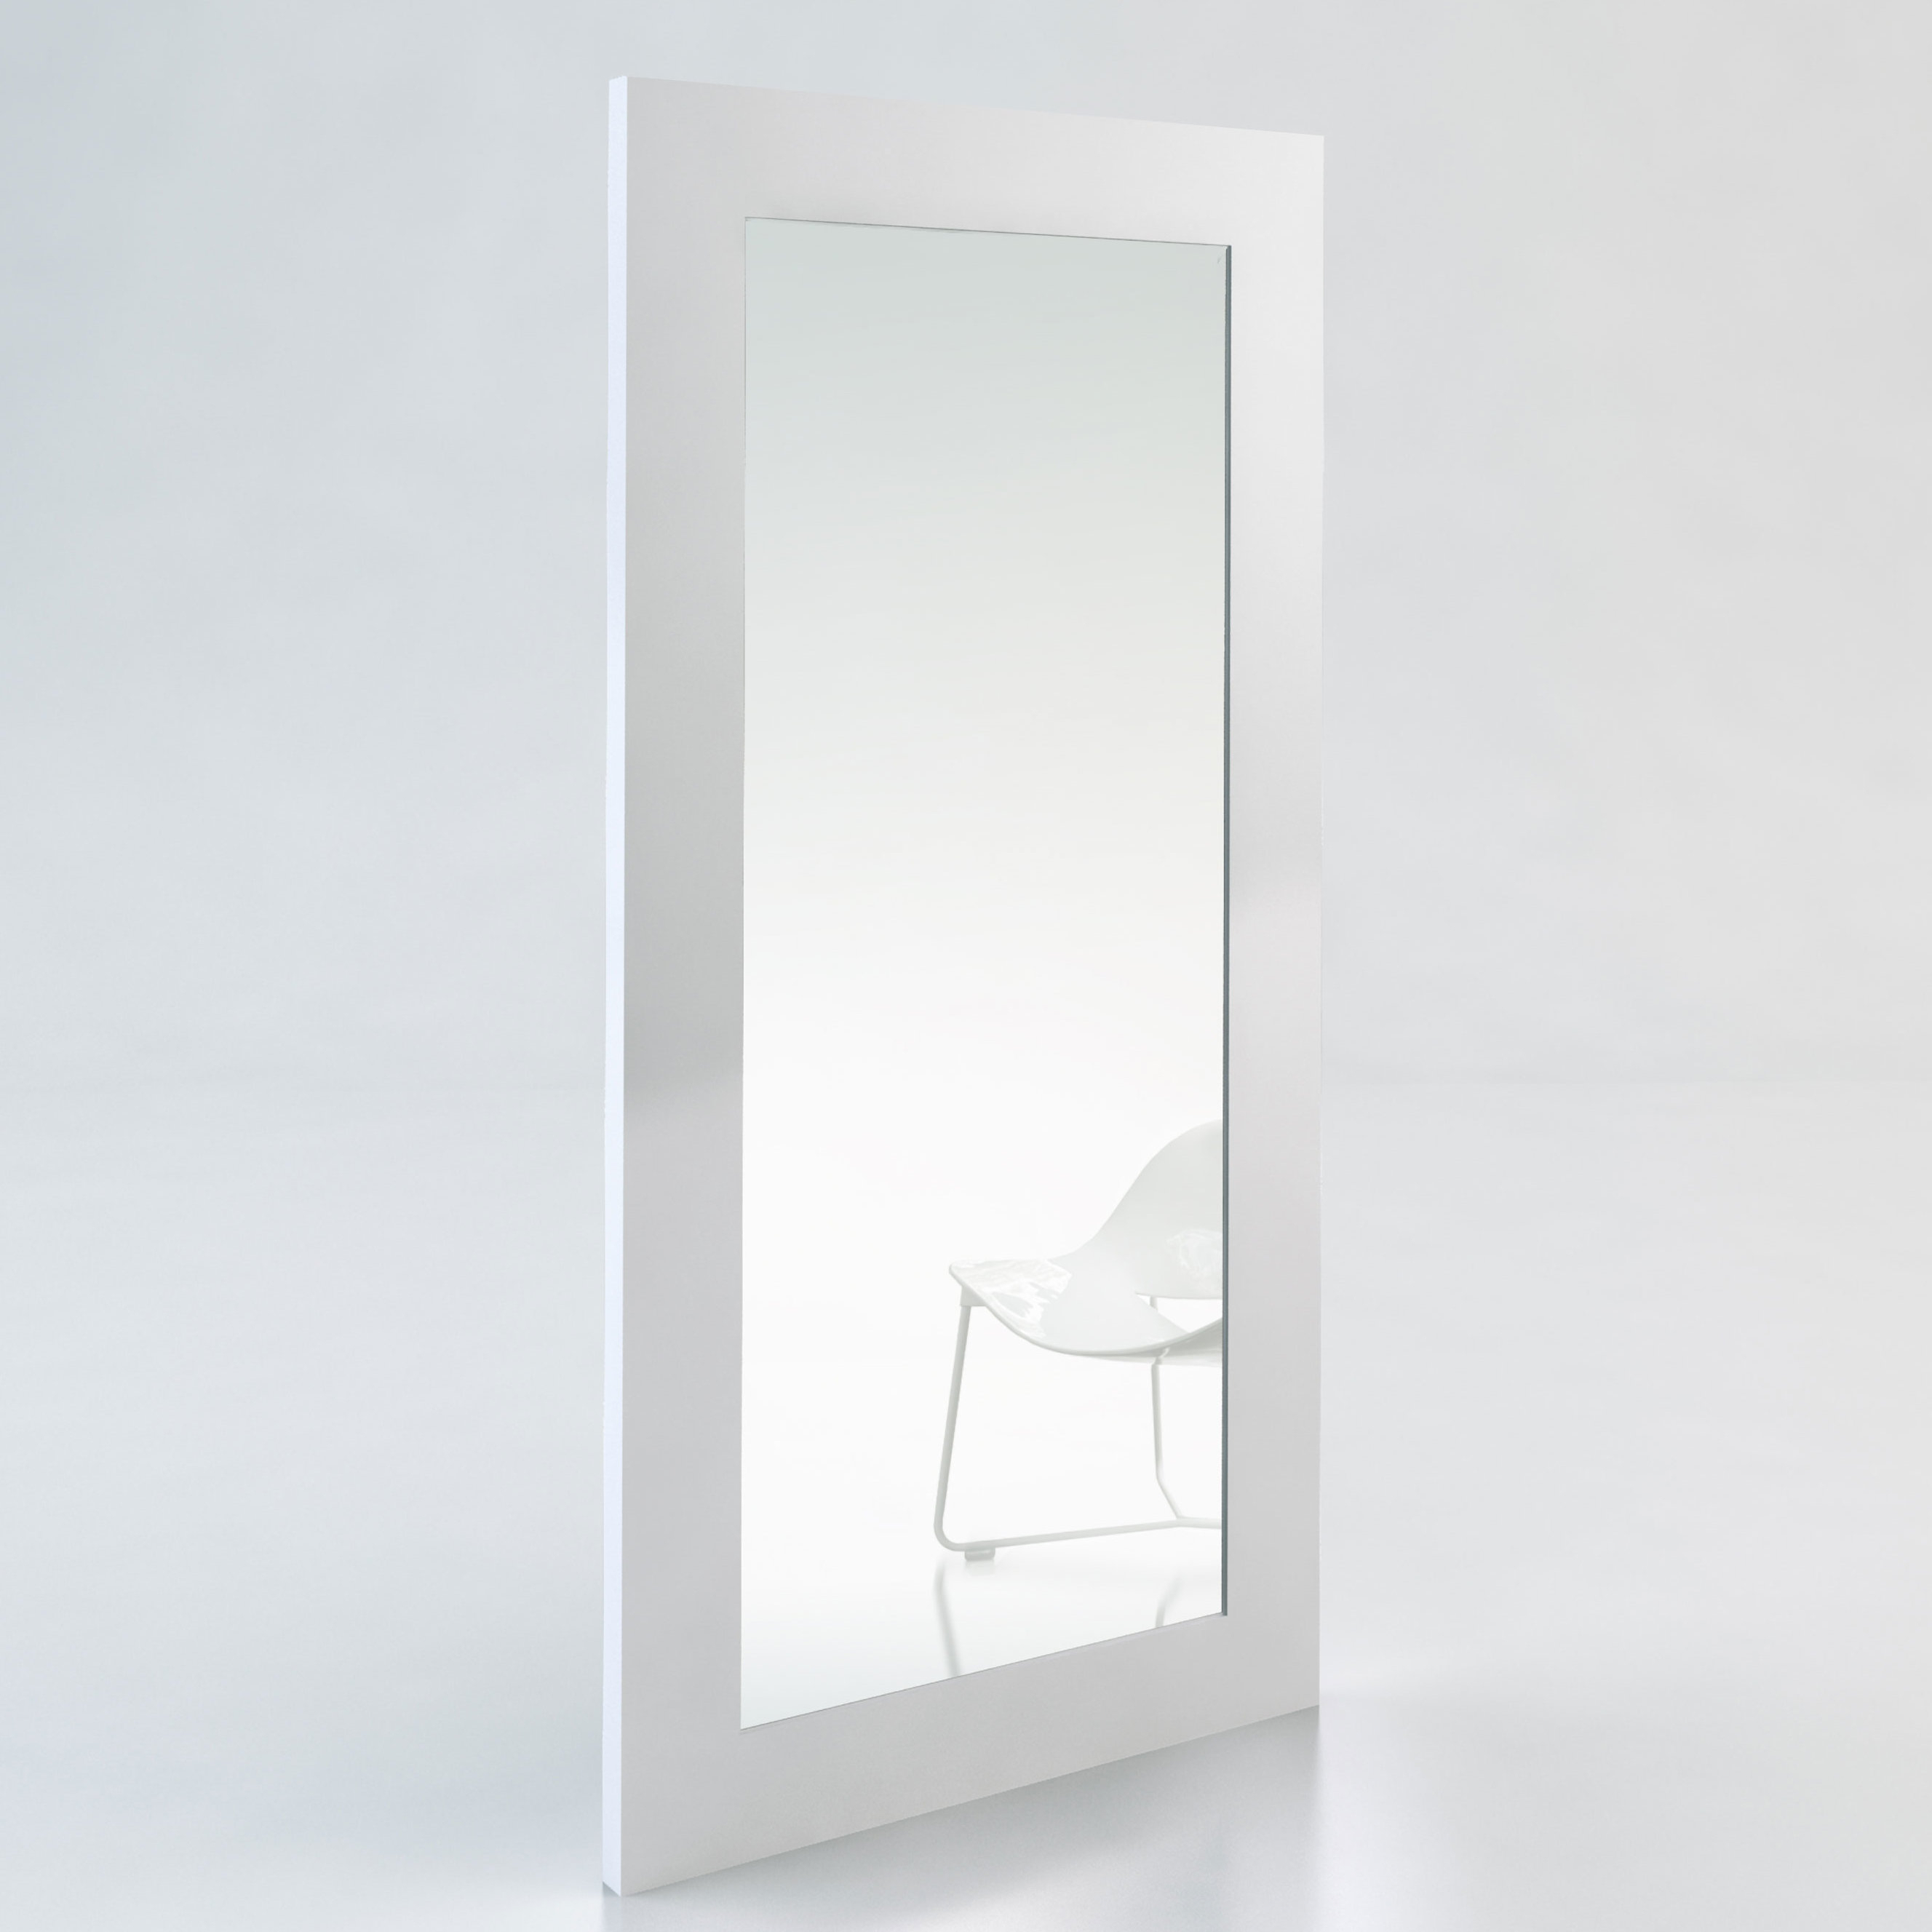 Cleobury Modern & Contemporary Full Length Mirror Pertaining To Modern & Contemporary Full Length Mirrors (View 18 of 30)